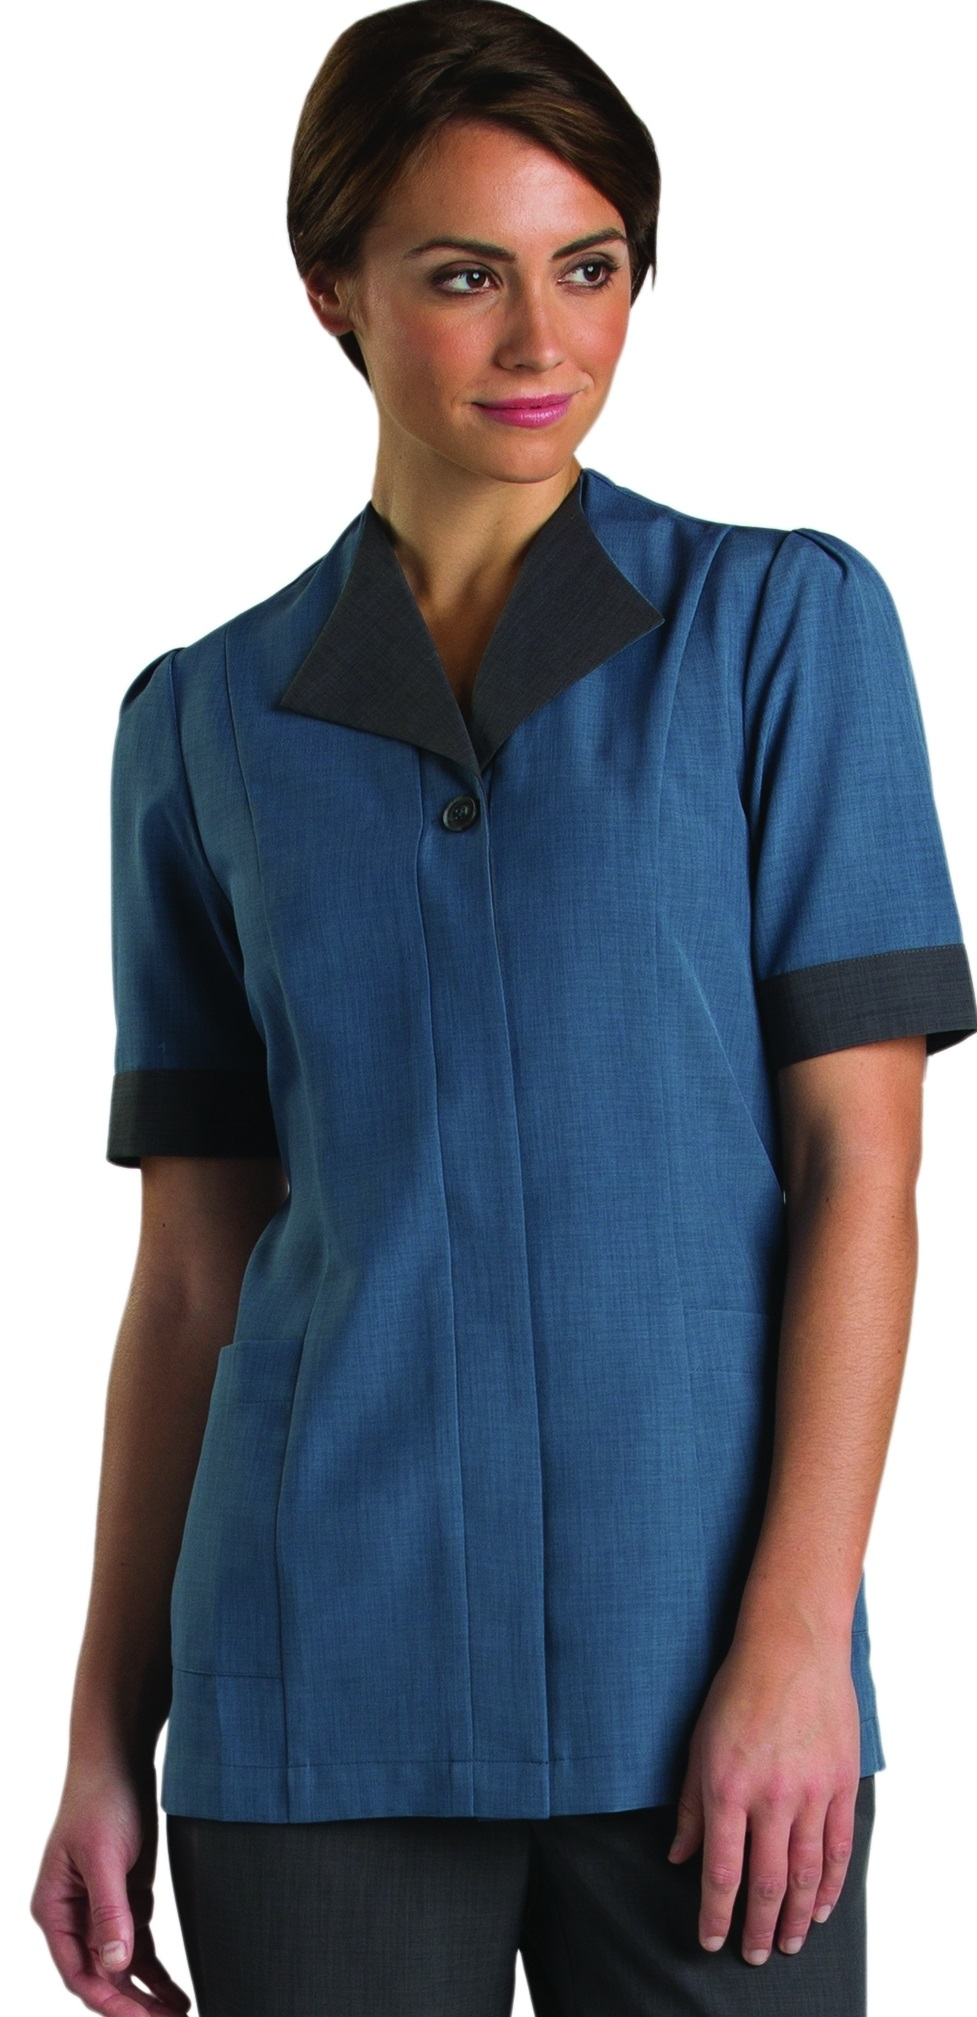 Housekeeping Tunics | Uniform Shirts | SharperUniforms.com